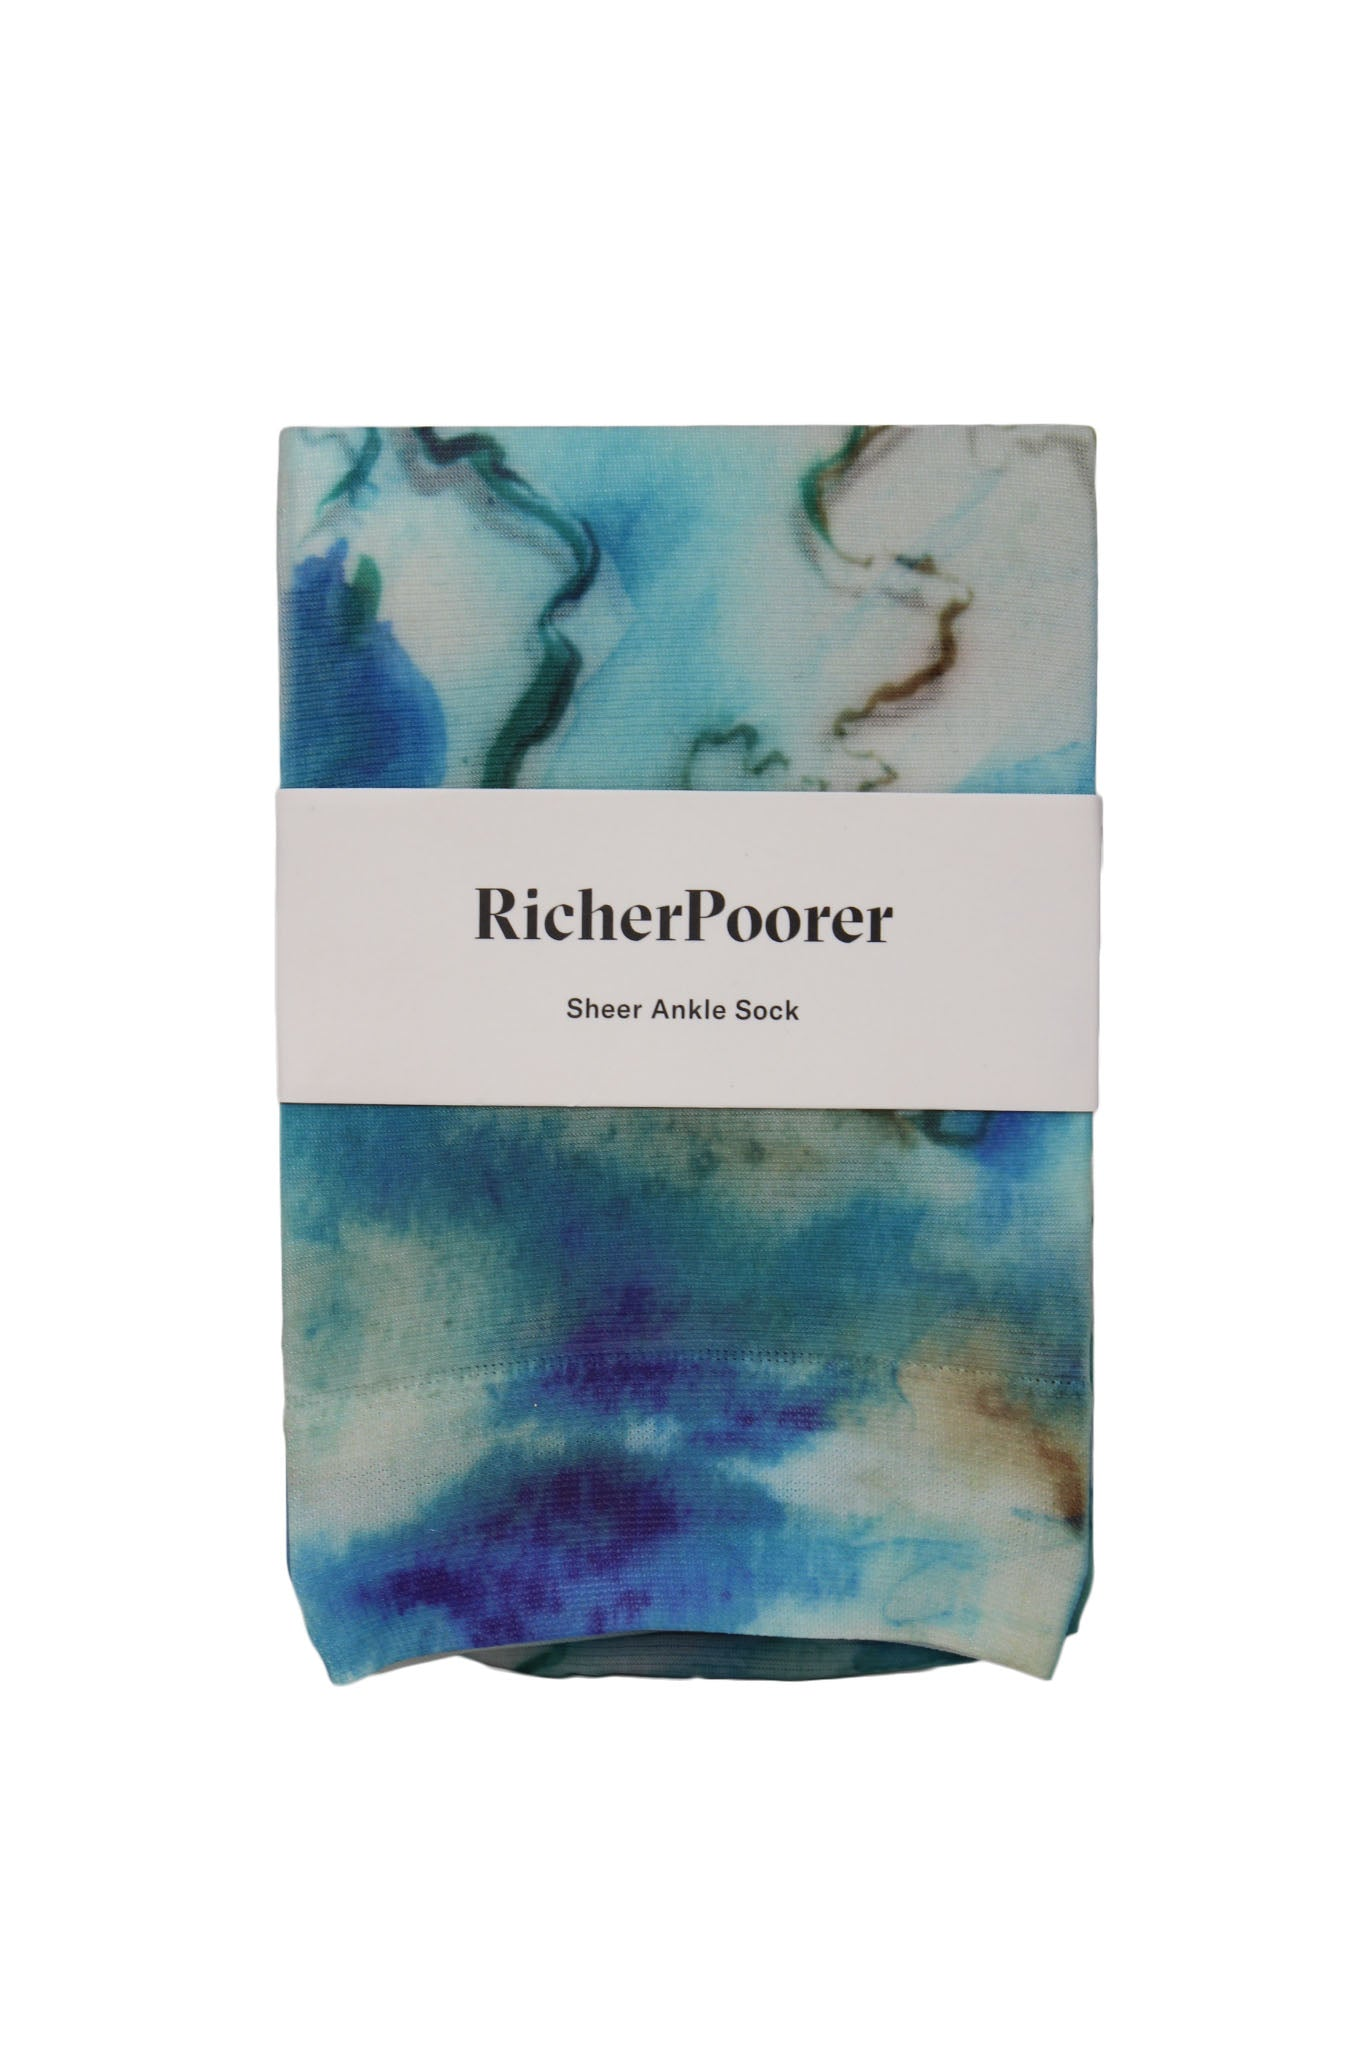 watercolor sheer ankle sock by richer poorer.